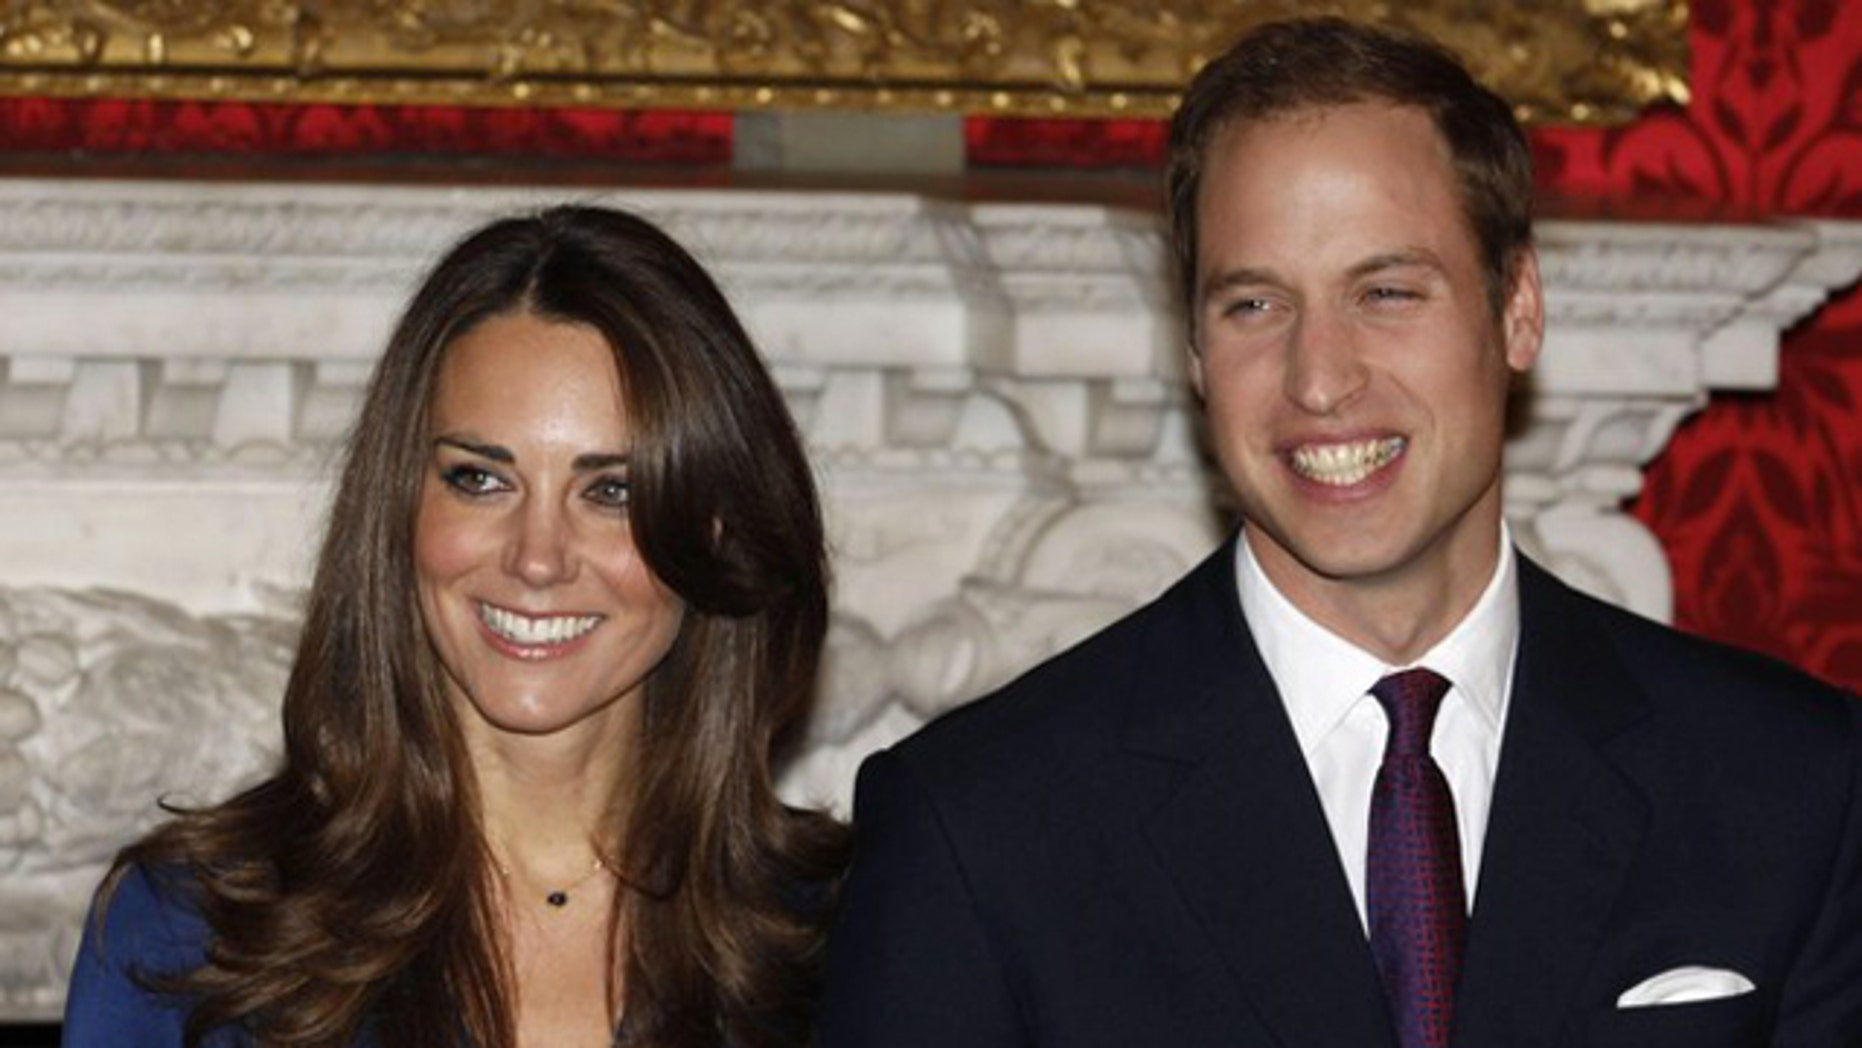 Britain's Prince William and his fiancee Kate Middleton pose for a photograph in St. James's Palace, central London in a Nov. 16, 2010 file photo (Reuters).